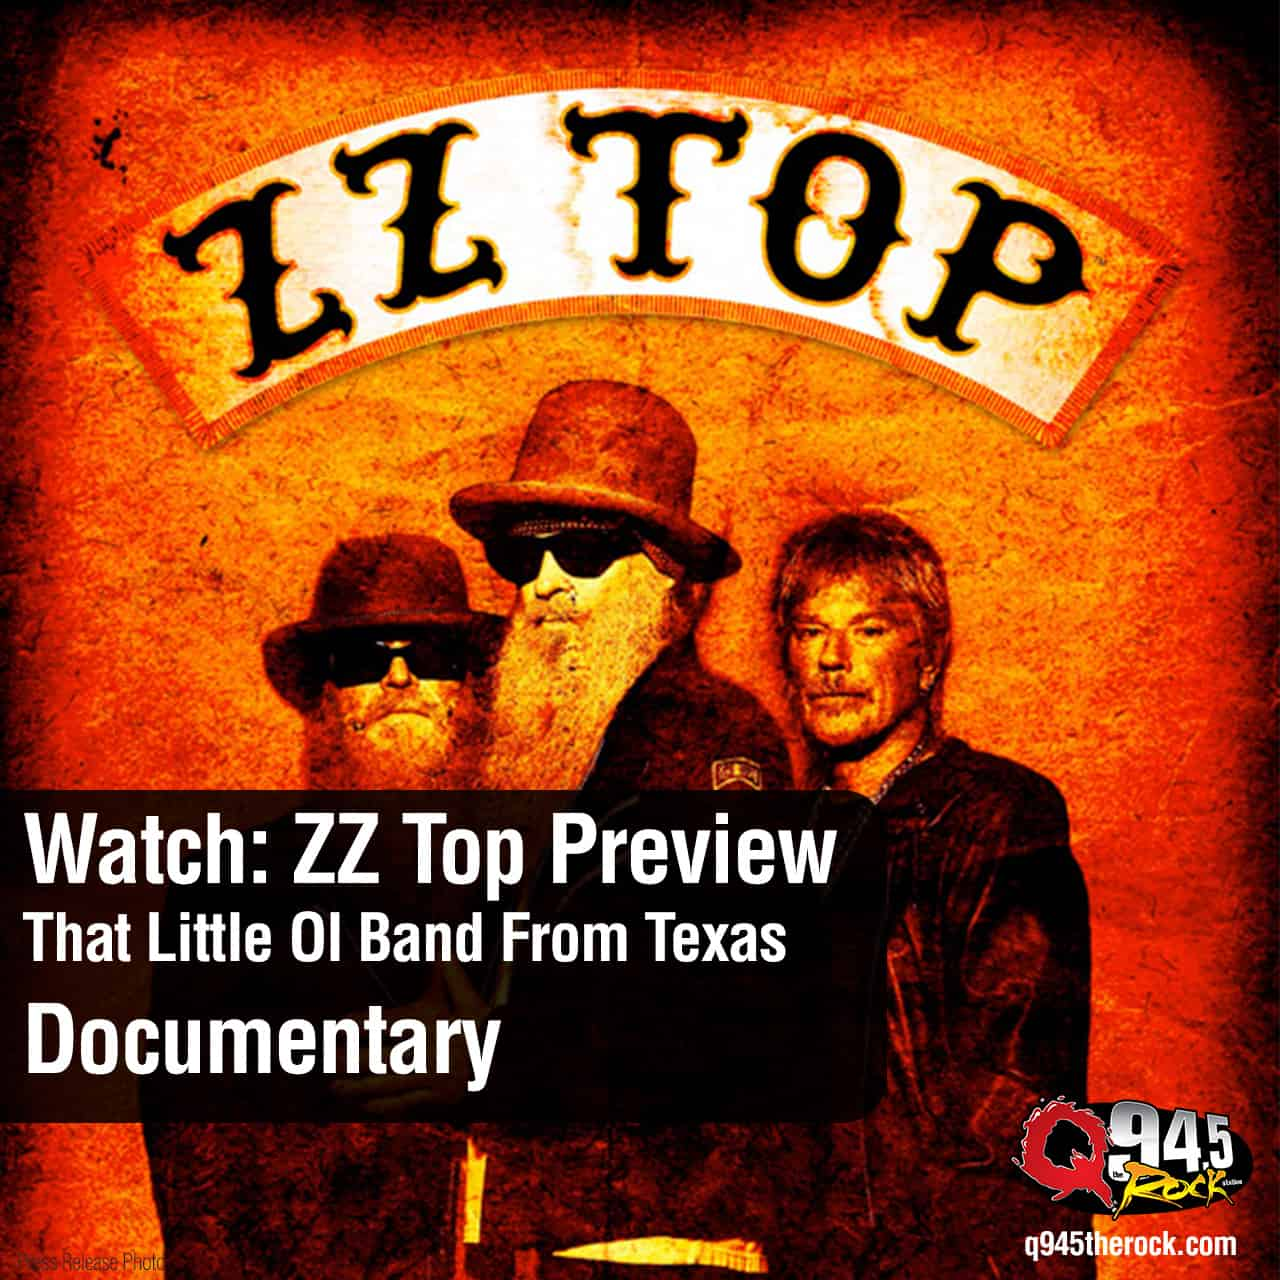 ZZ Top Preview That Little Ol Band From Texas Documentary